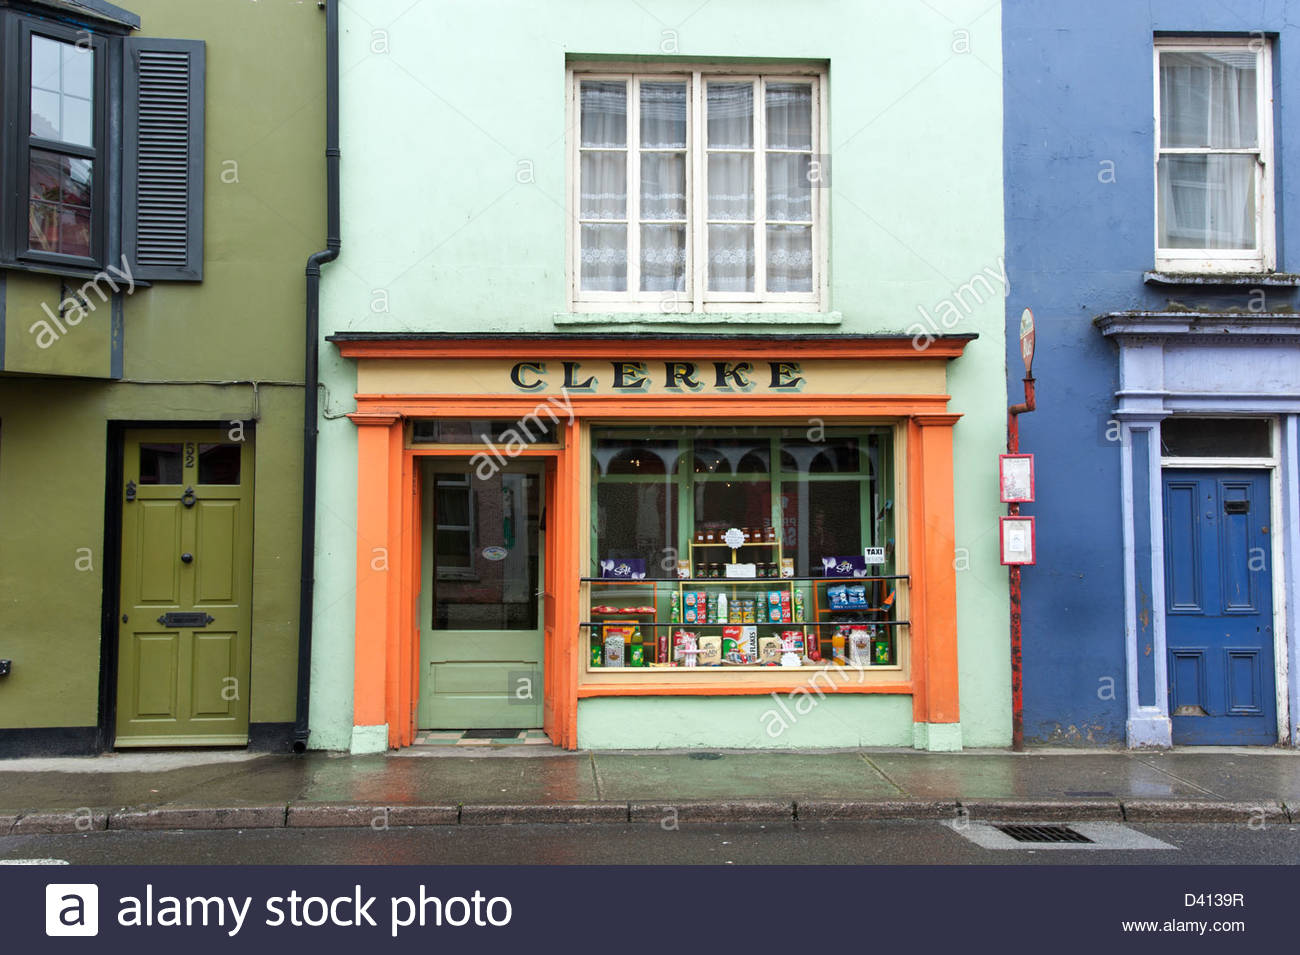 Small local grocery store in Skibbereen, County Cork, Ireland - Stock Image